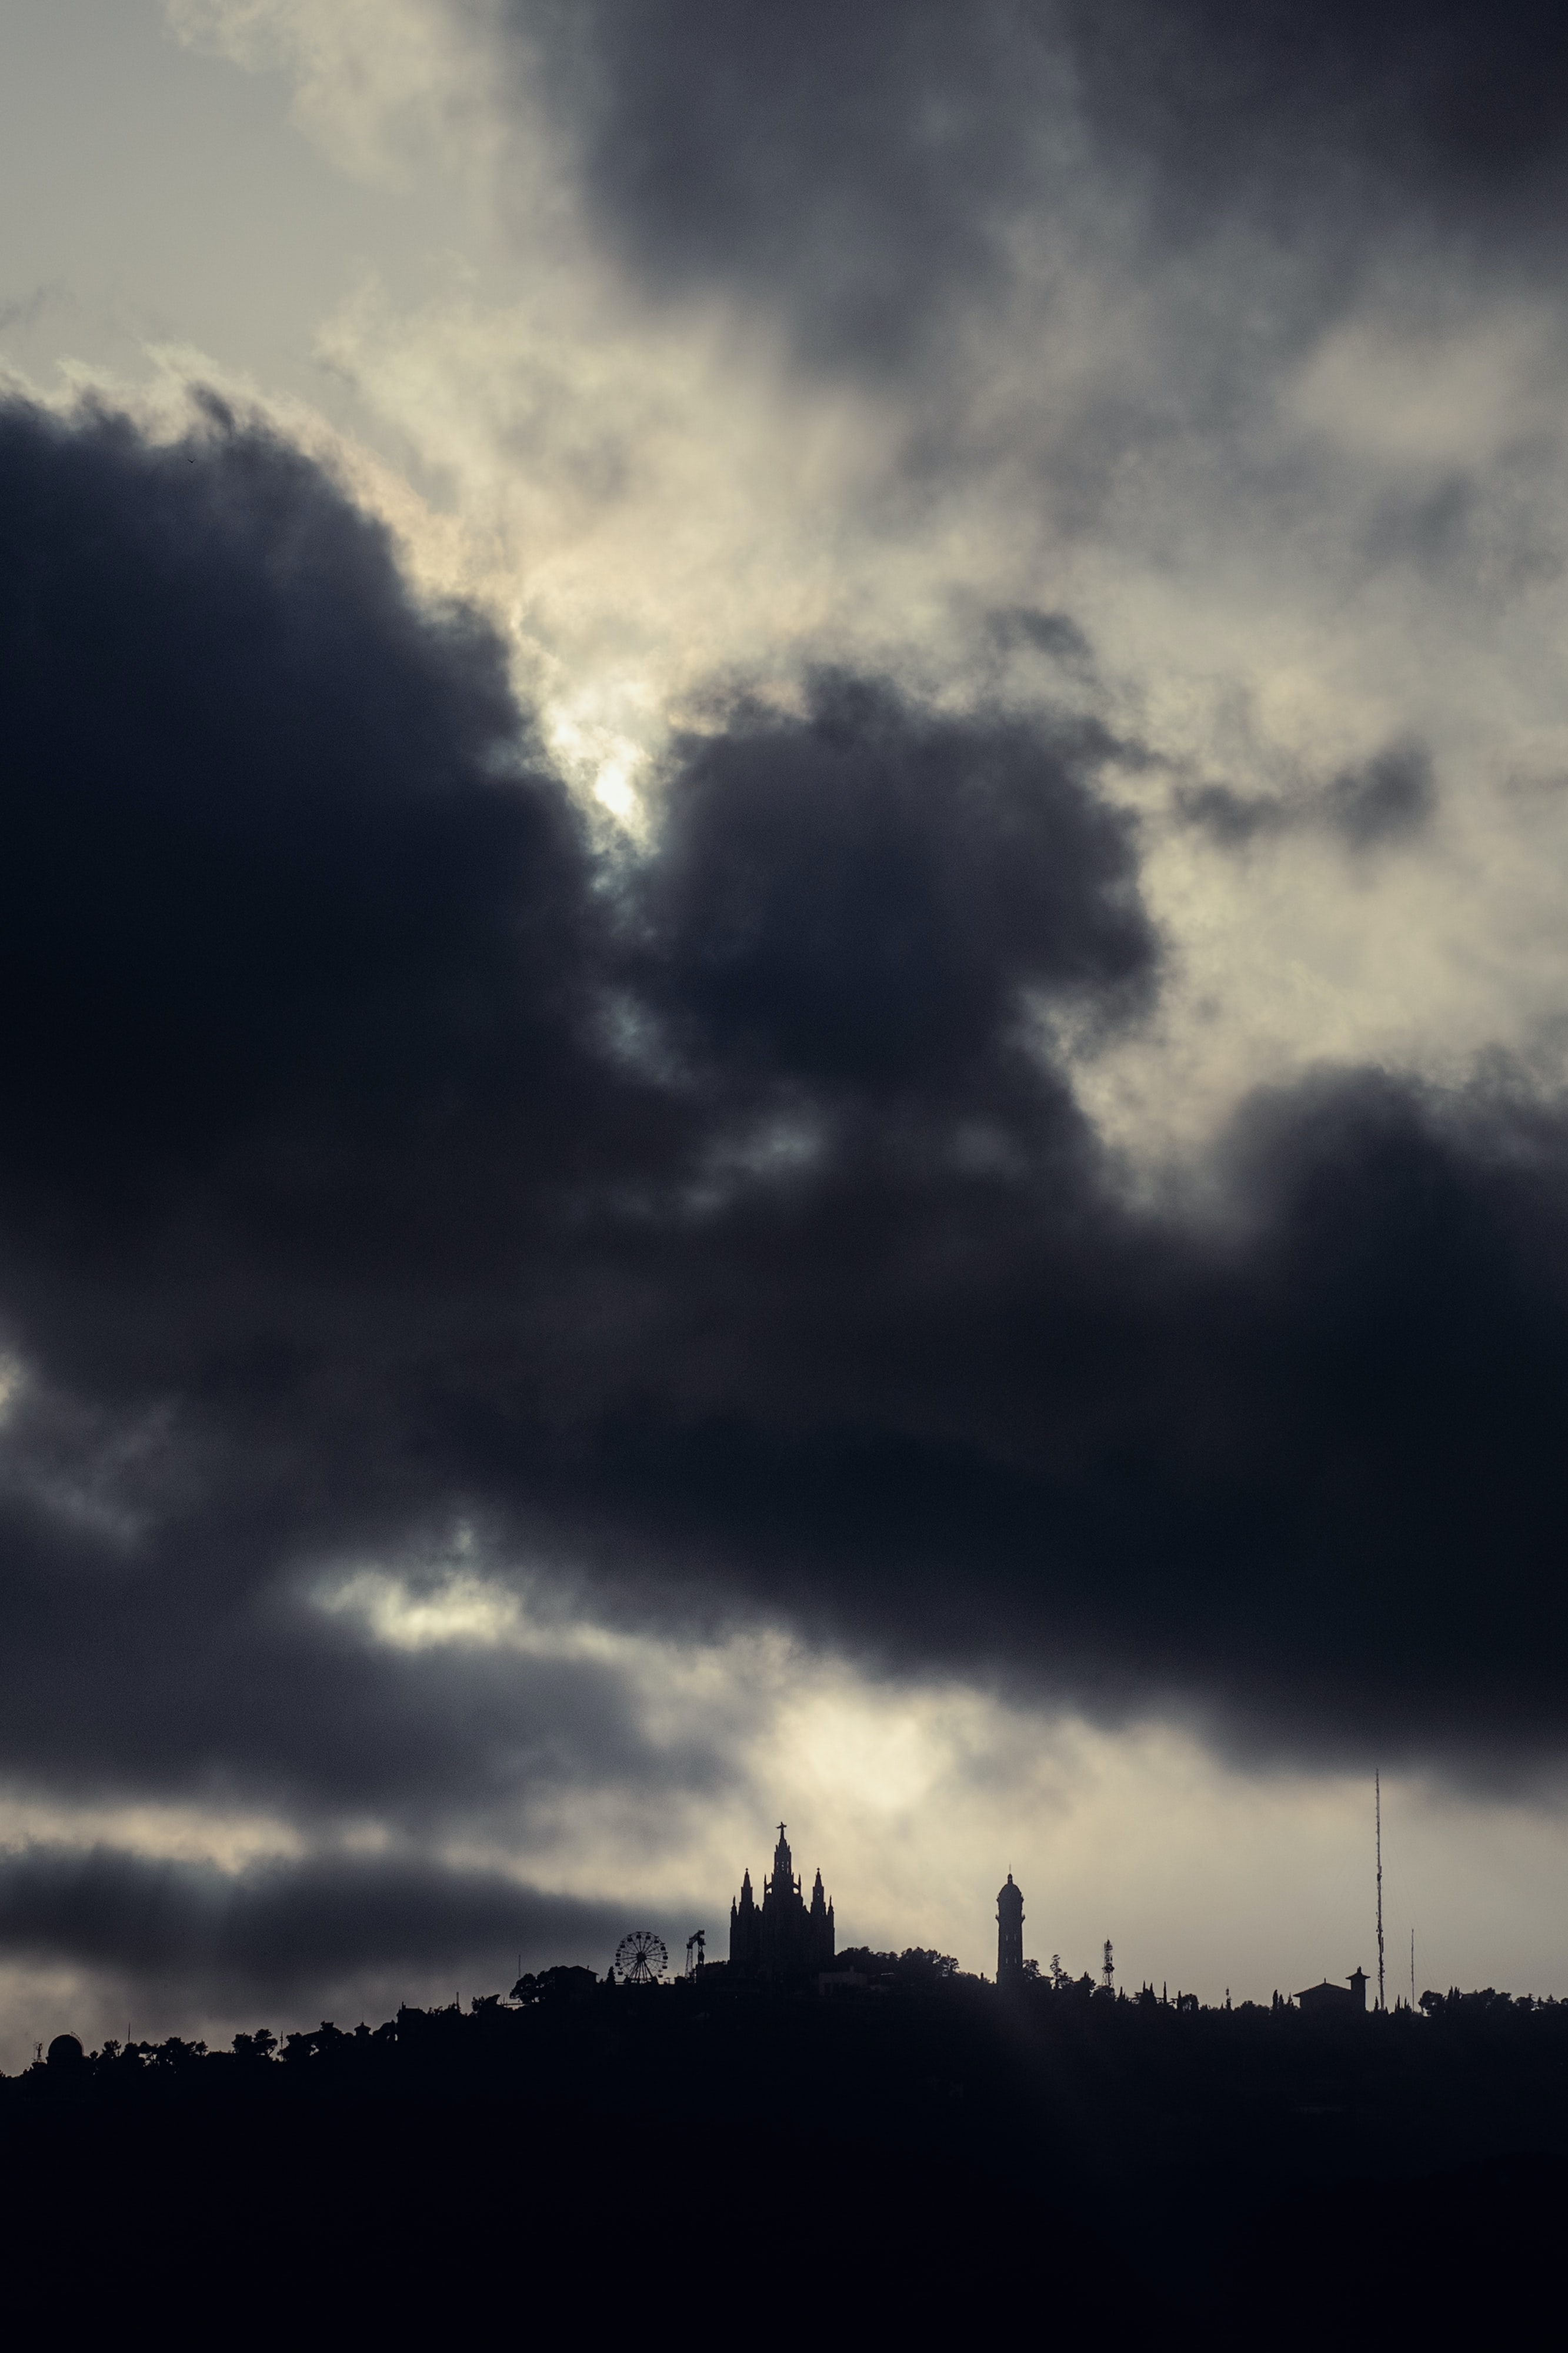 silhouette of buildings under gray sky